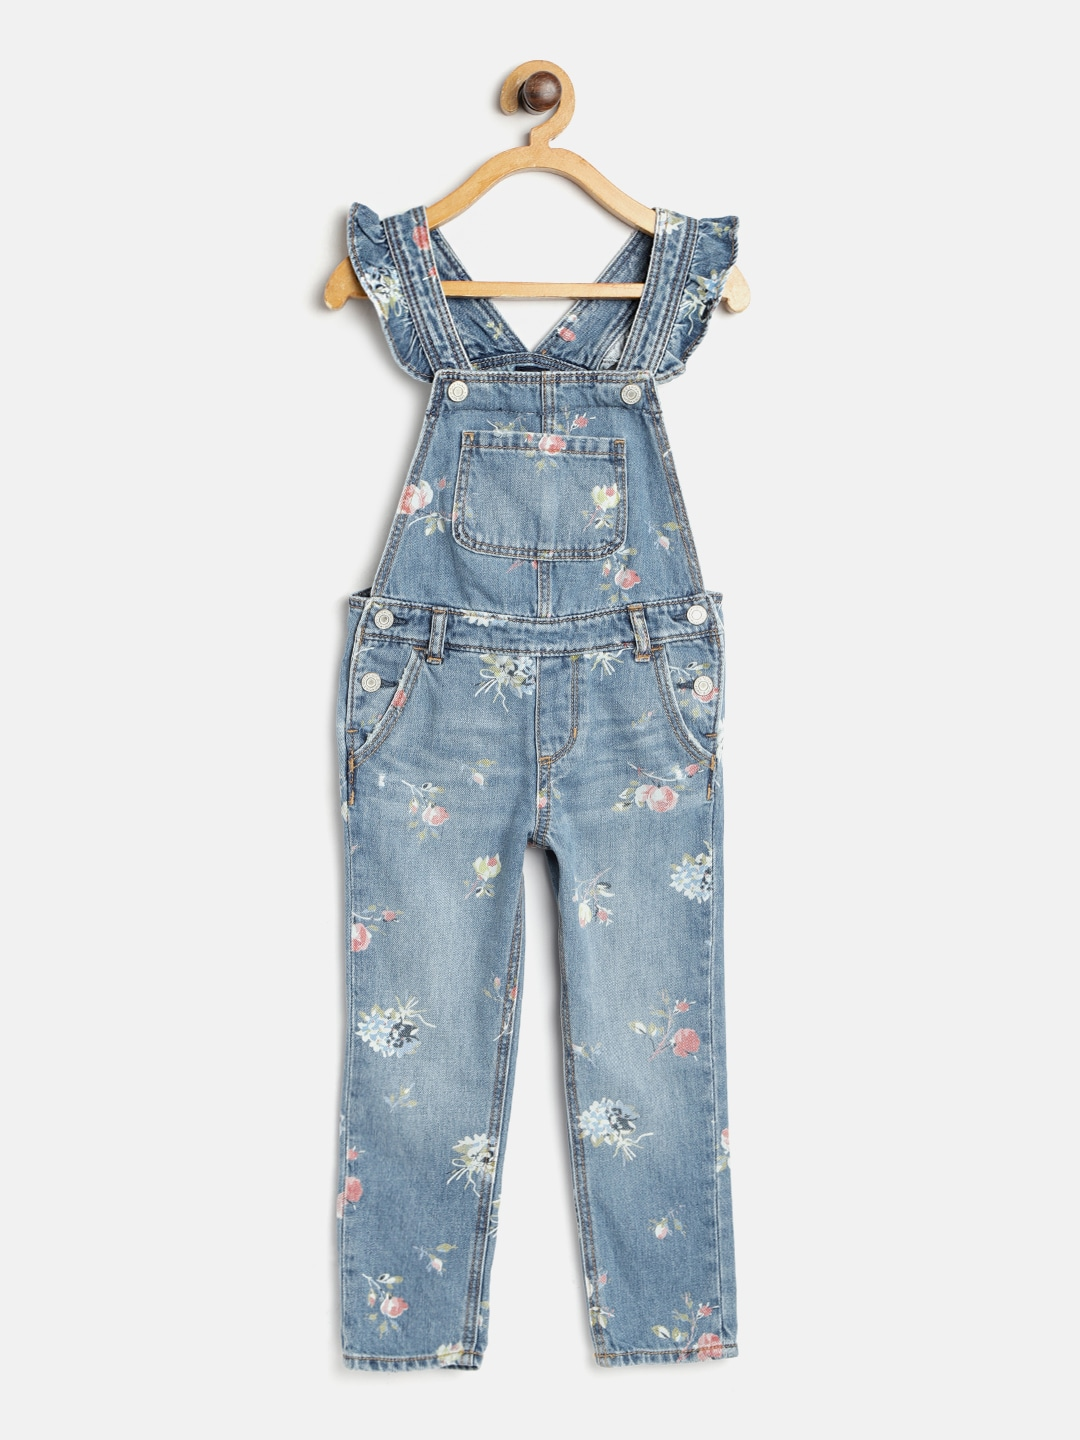 42b67c3ab7 Dungarees - Buy Dungarees Dress for Women Online - Myntra